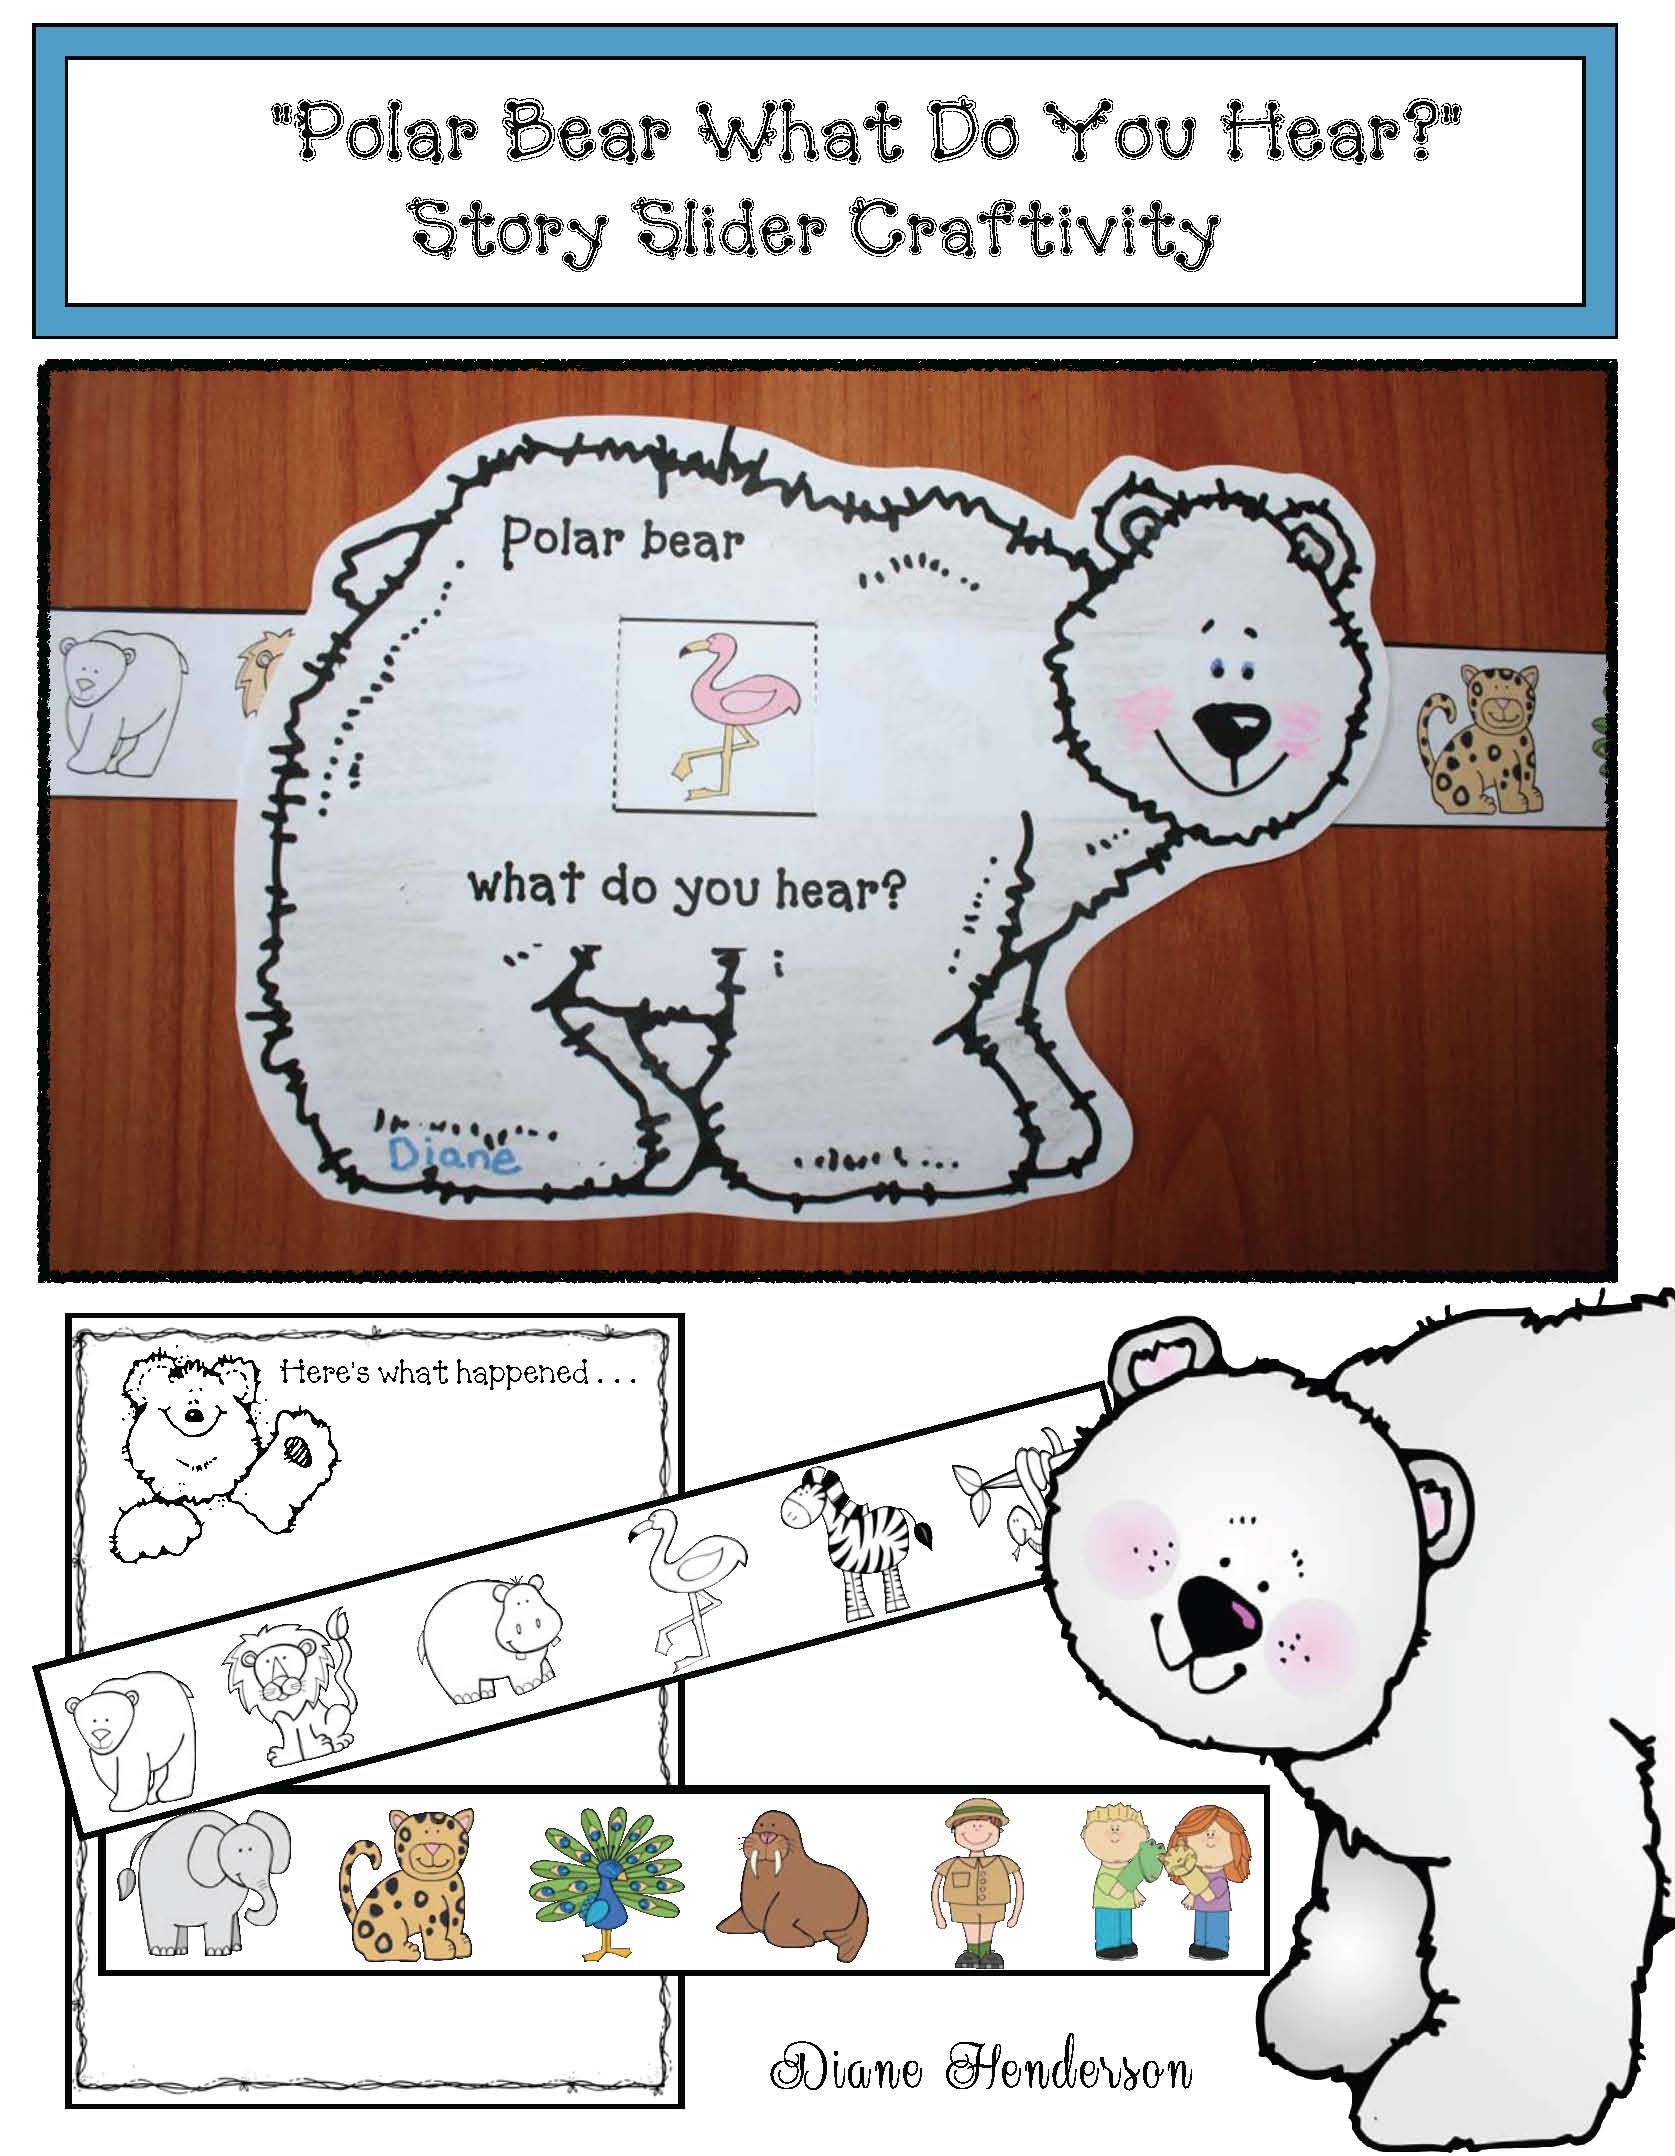 storytelling sliders, pete the cat activities, polar bear what do you see activities, poloar bear crafts, if you give a mouse a cookie activities, mice crafts, mice activities, polar bear activities, brown bear what do you see activities, back to school writing prompts, back to school crafts, back to school icebreakers, selfie craft, selfie writing prompt